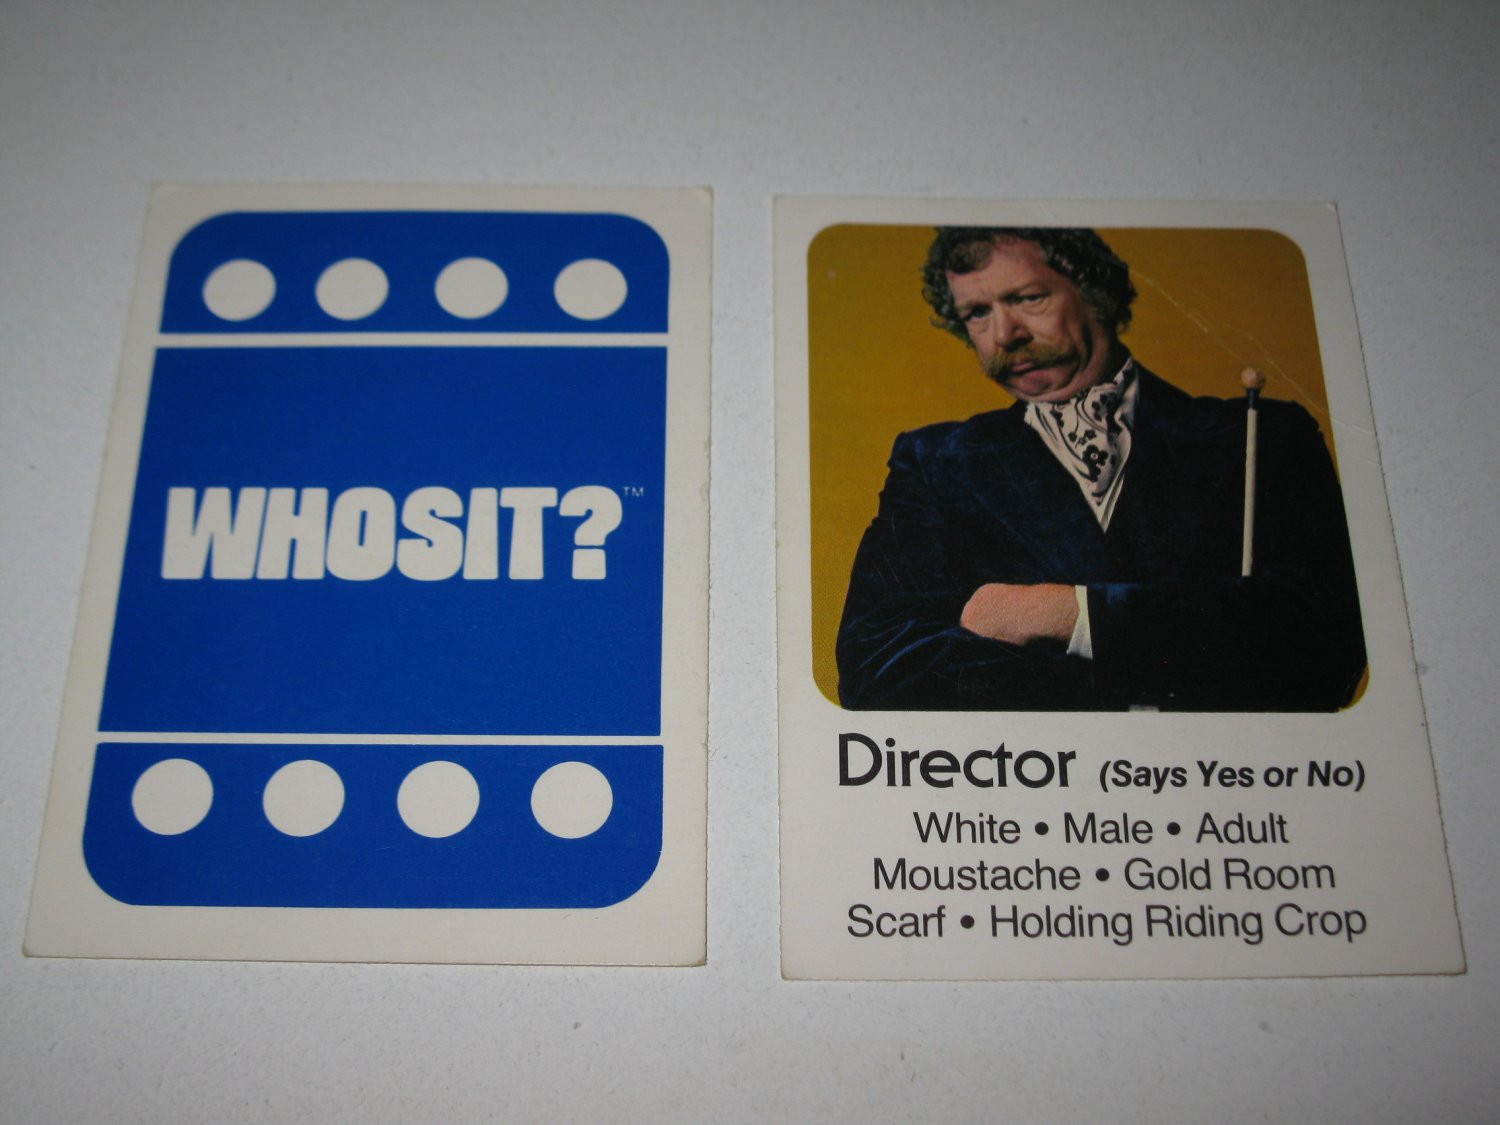 1976 Whosit? Board Game Piece: Director blue Character Card